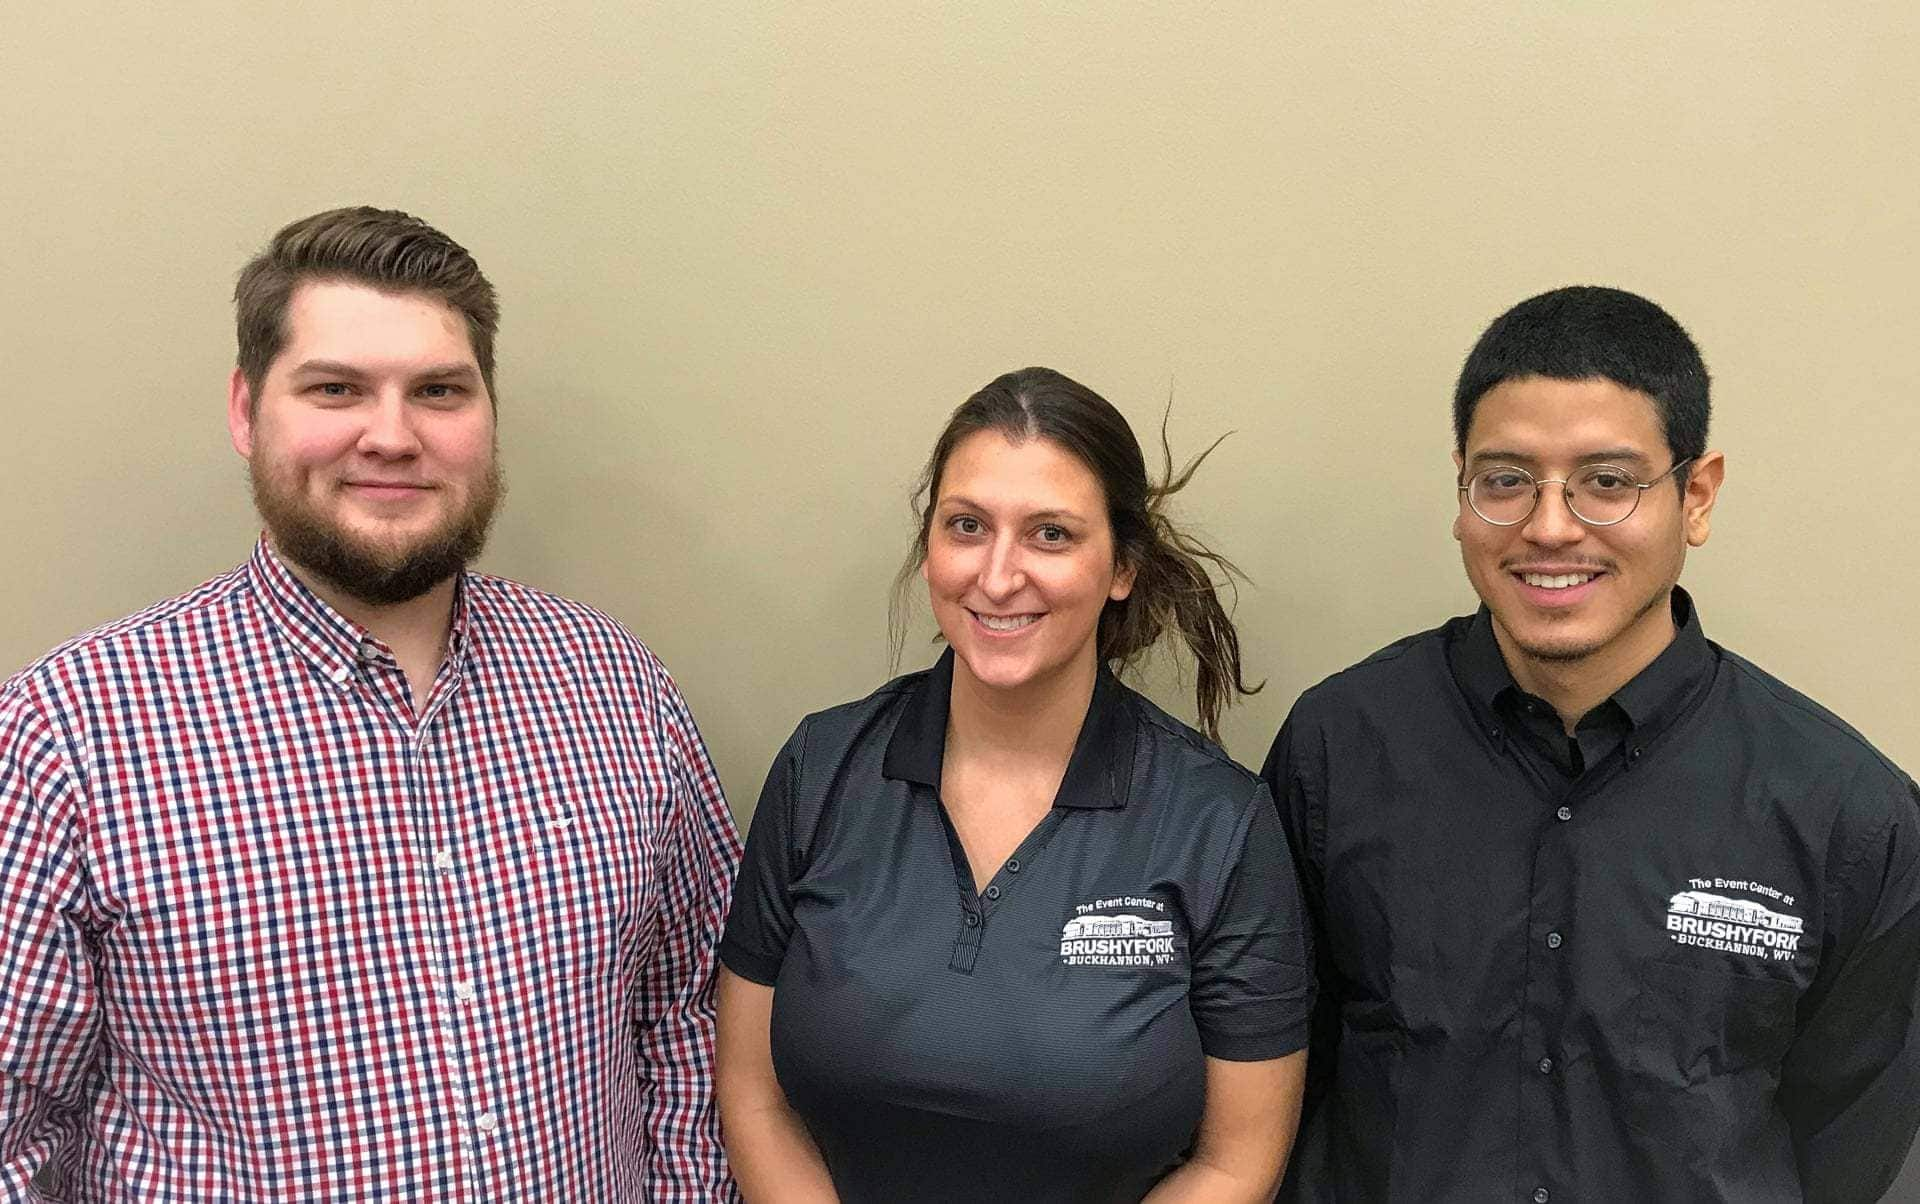 Blossoming popularity of Brushy Fork event center leads to two new hires